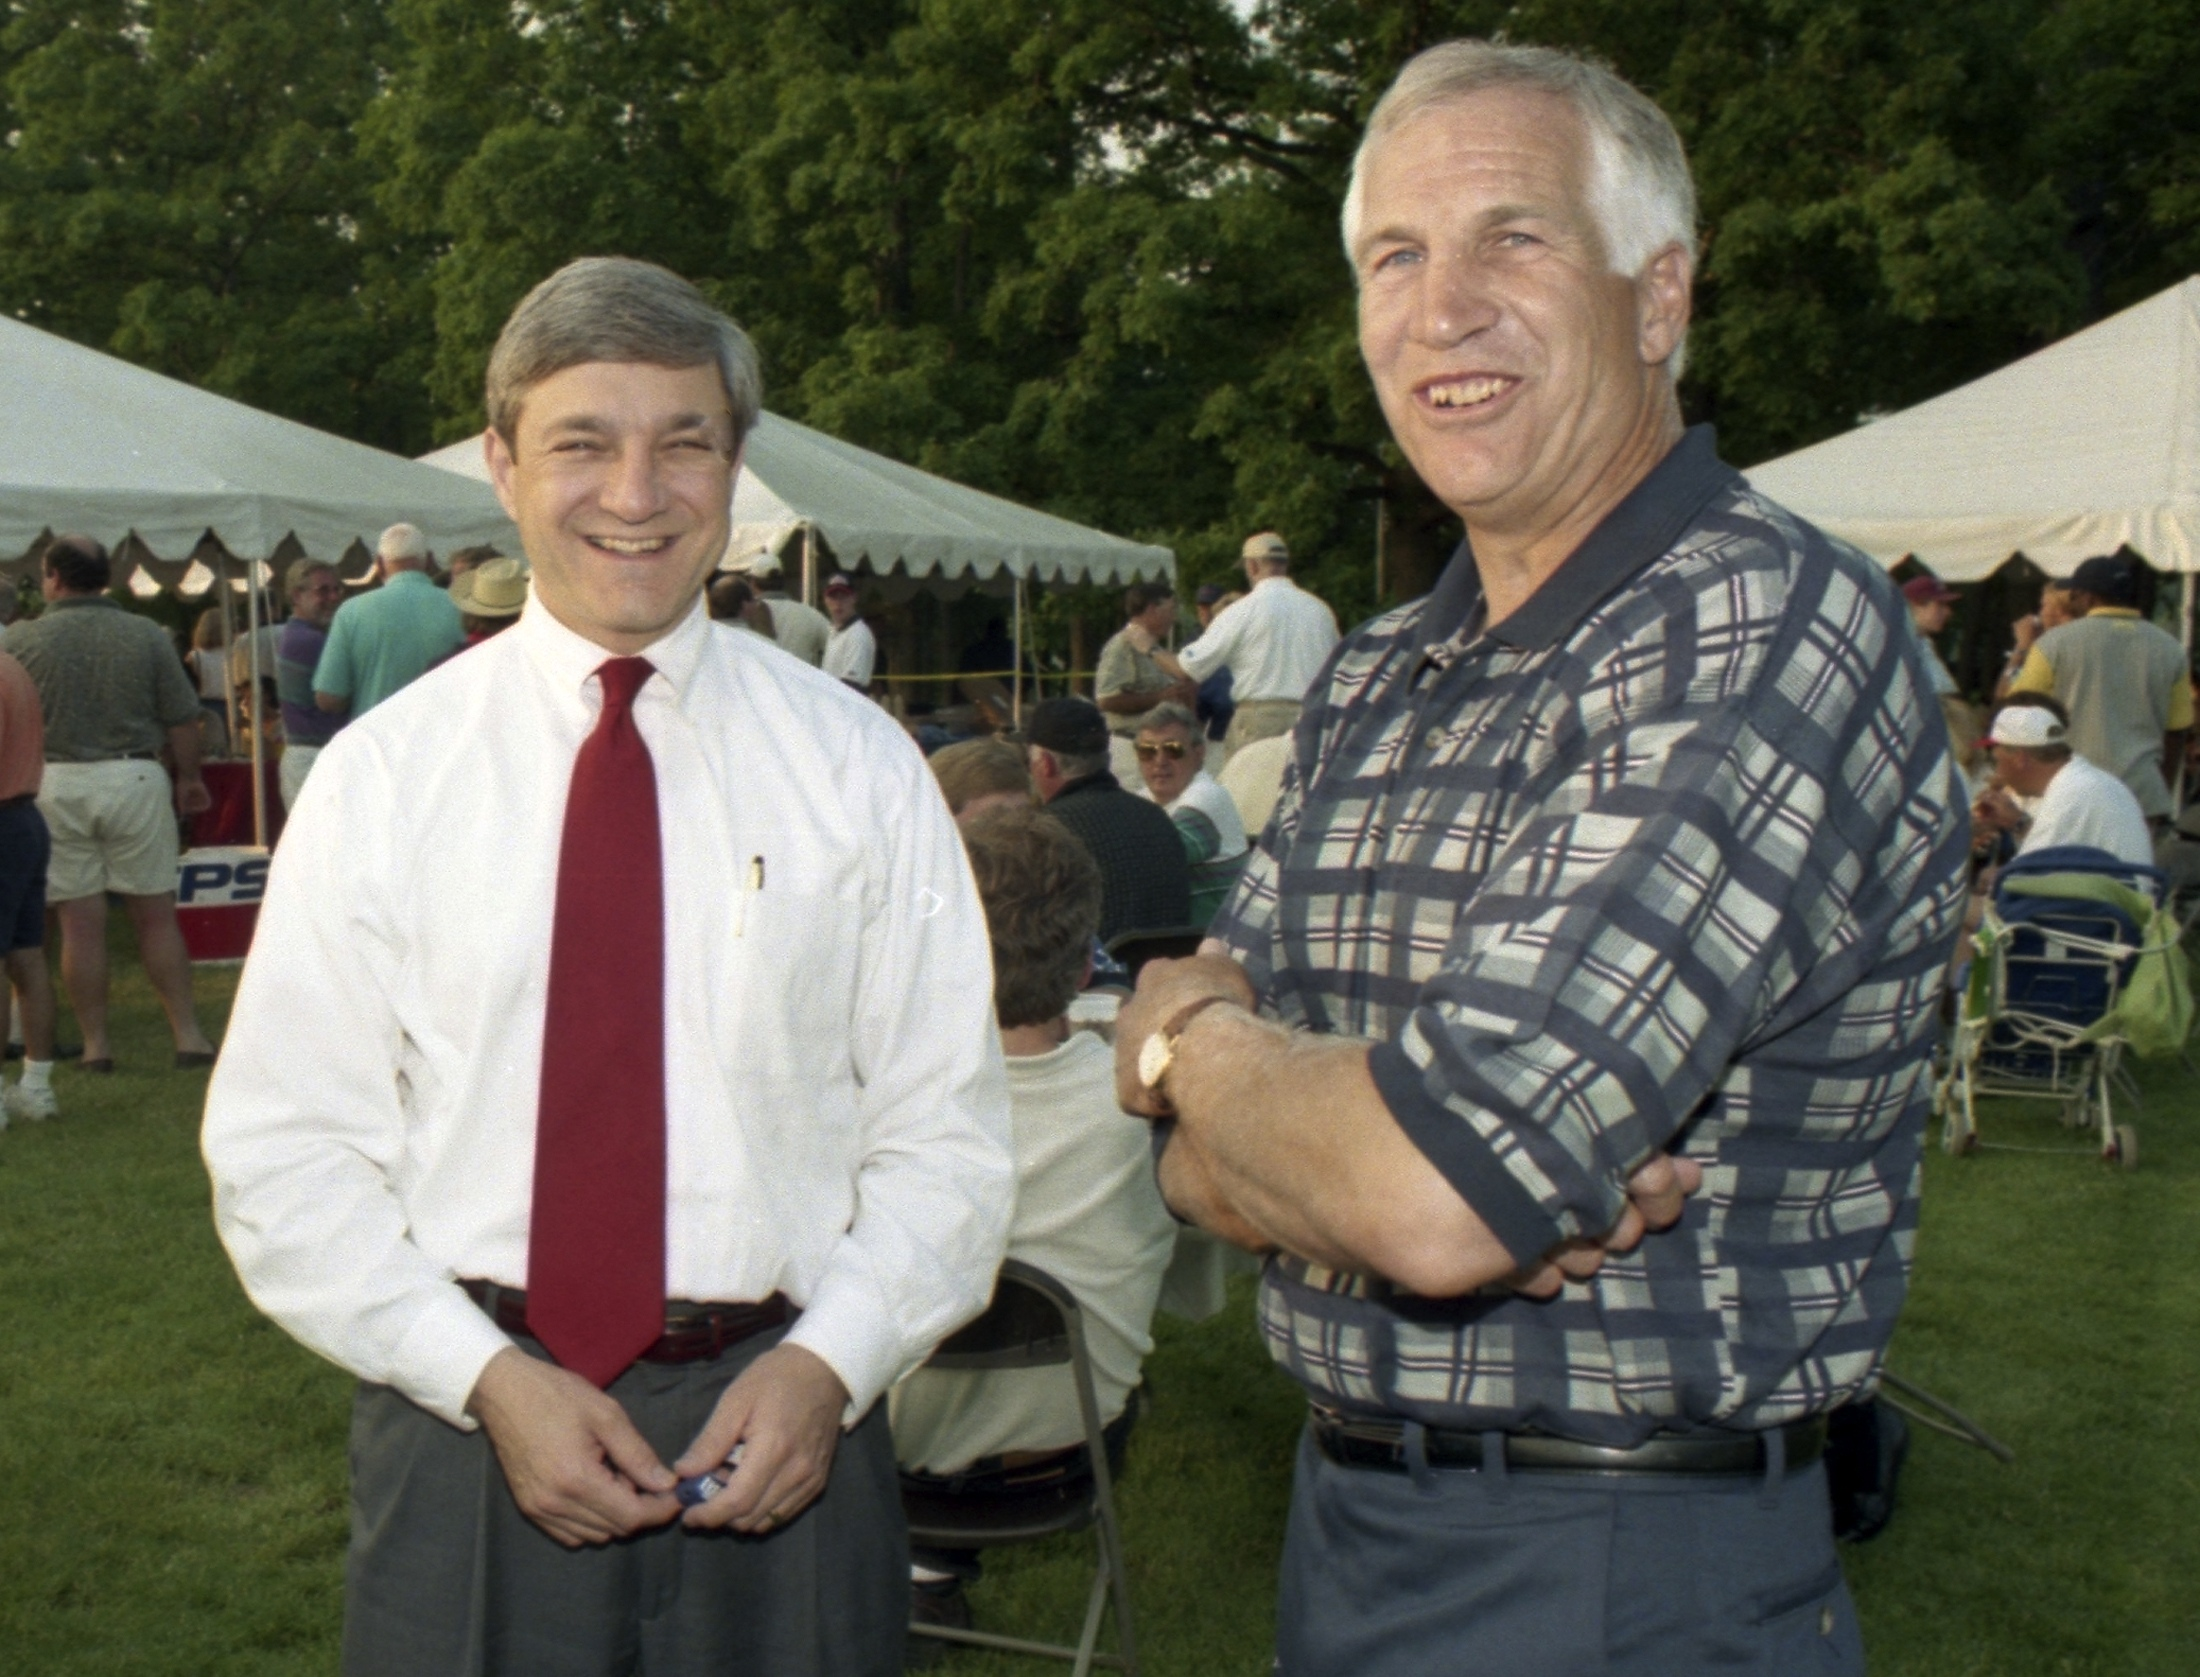 Graham Spanier, left, allegedly hid Jerry Sandusky's sex crimes while enforcing arcane rules. (Reuters)